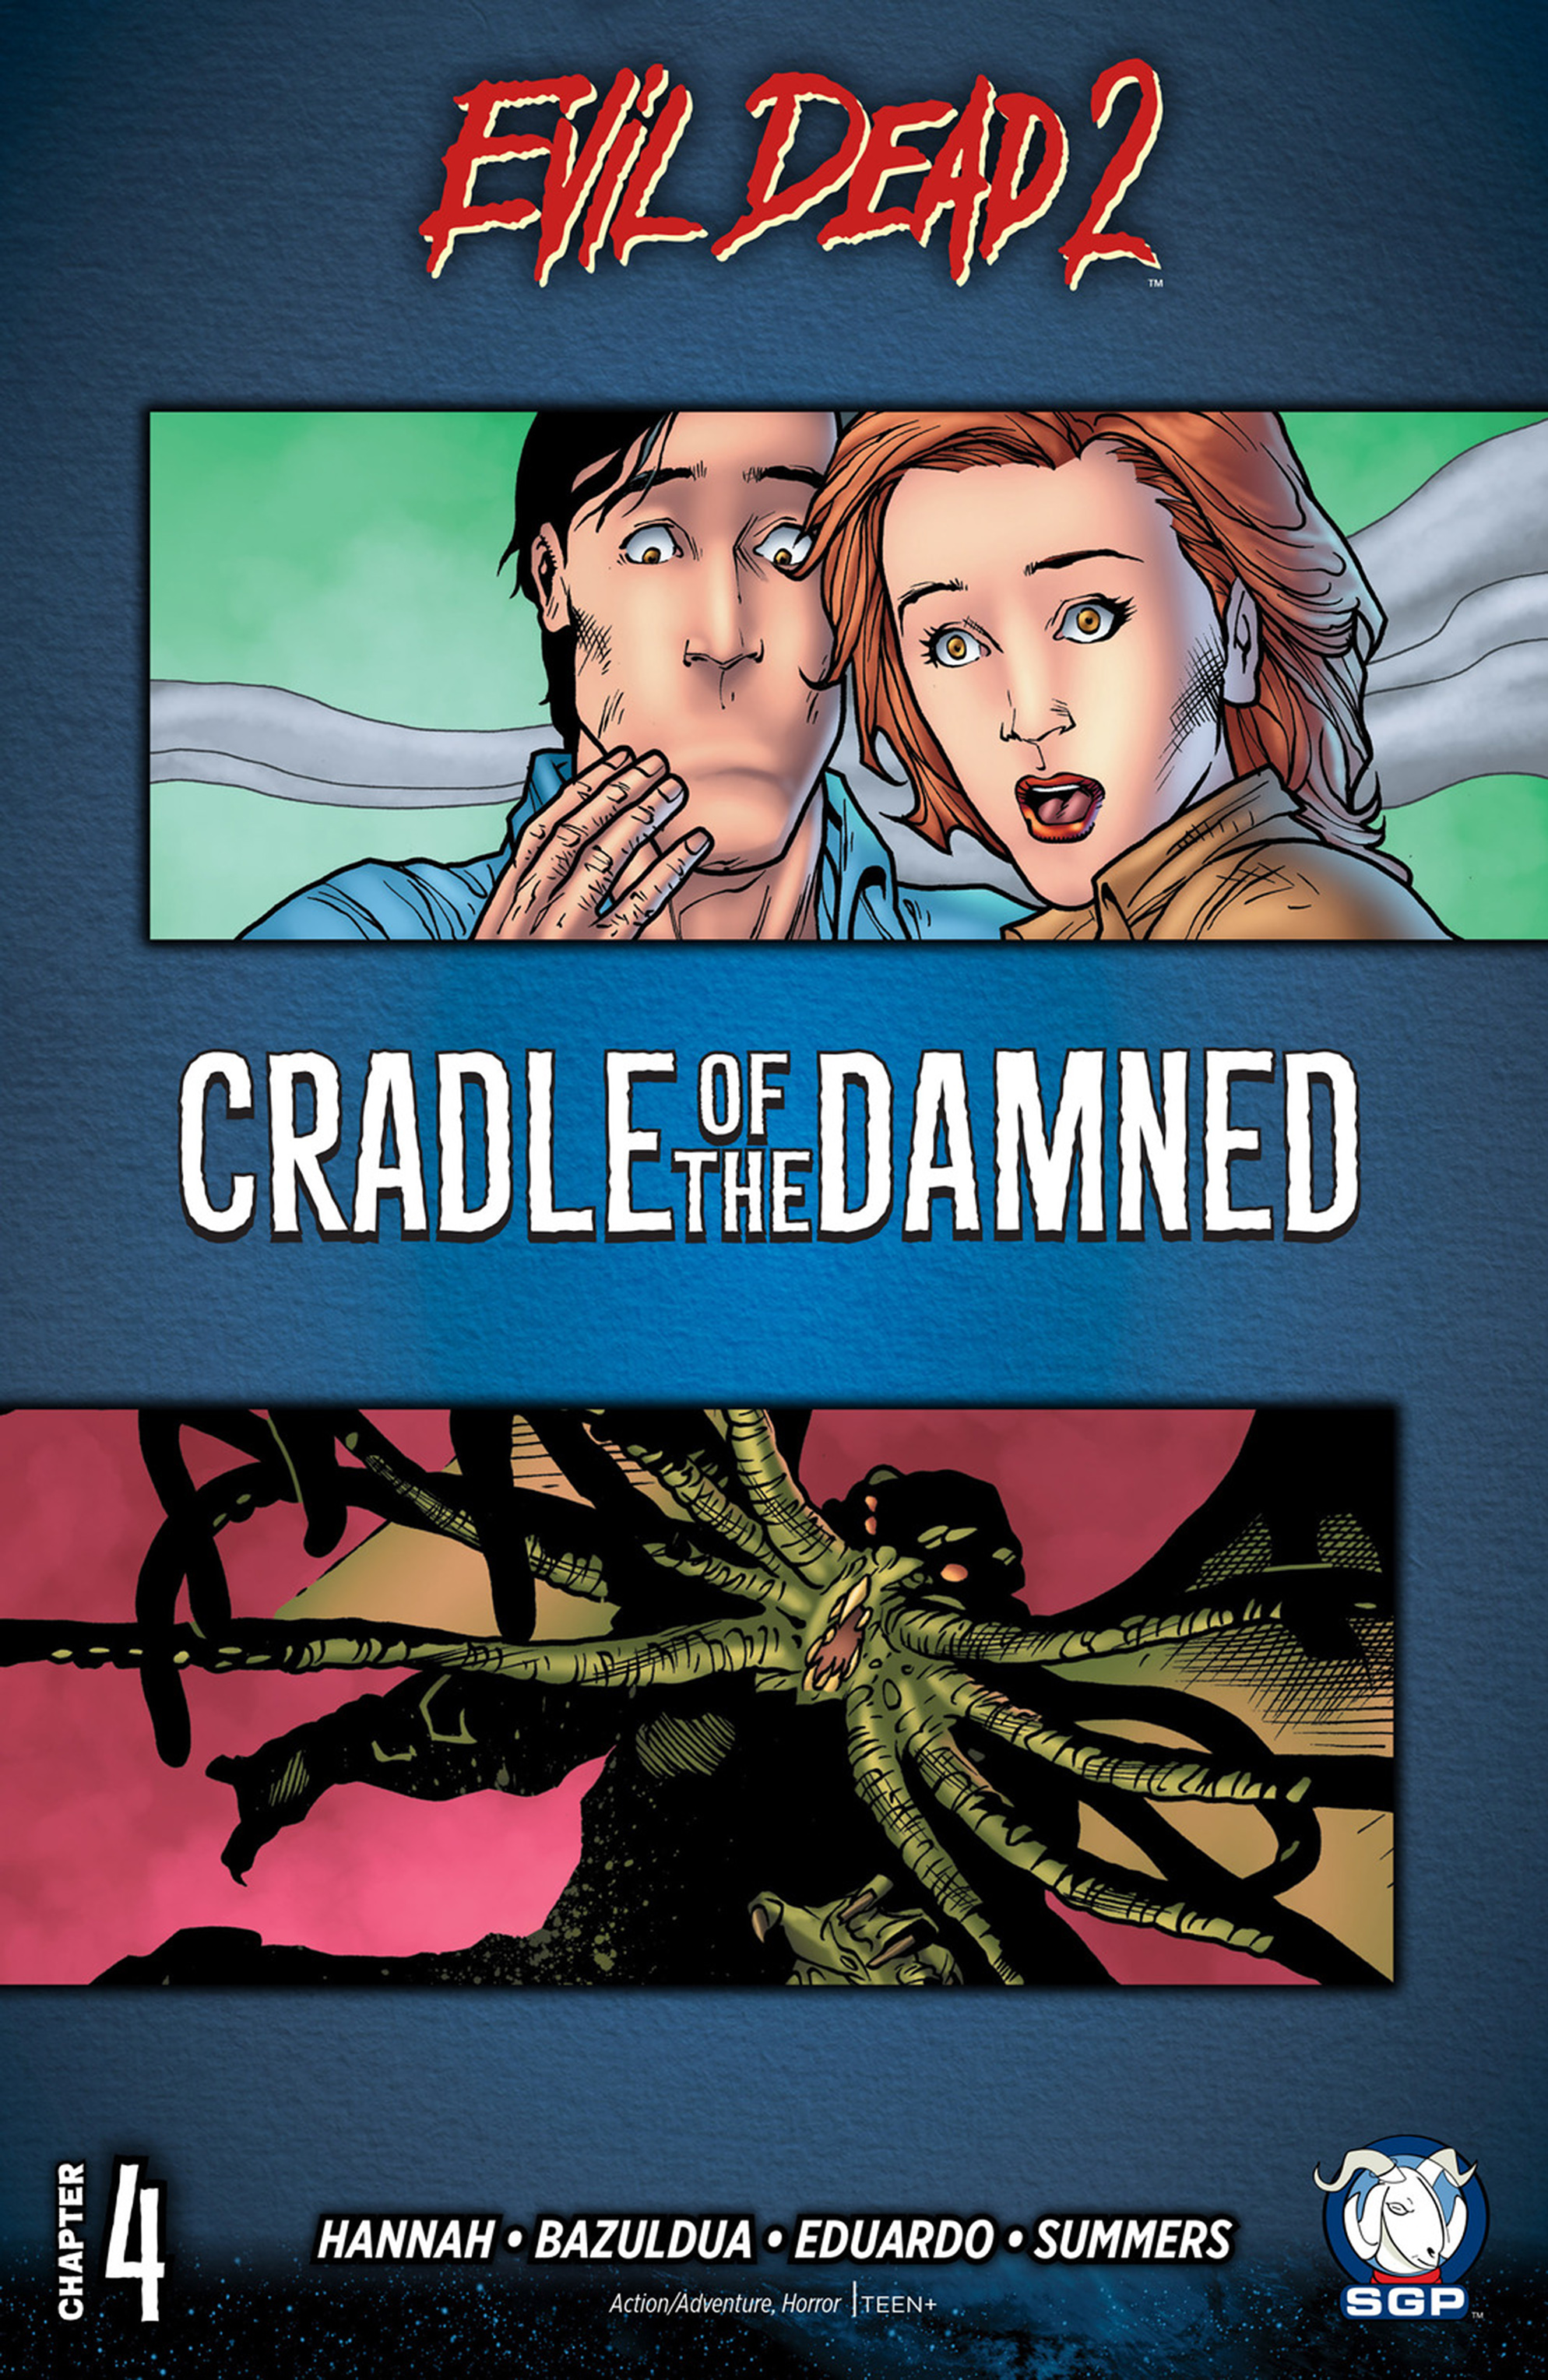 Evil Dead 2: Cradle of the Damned 4 Page 1